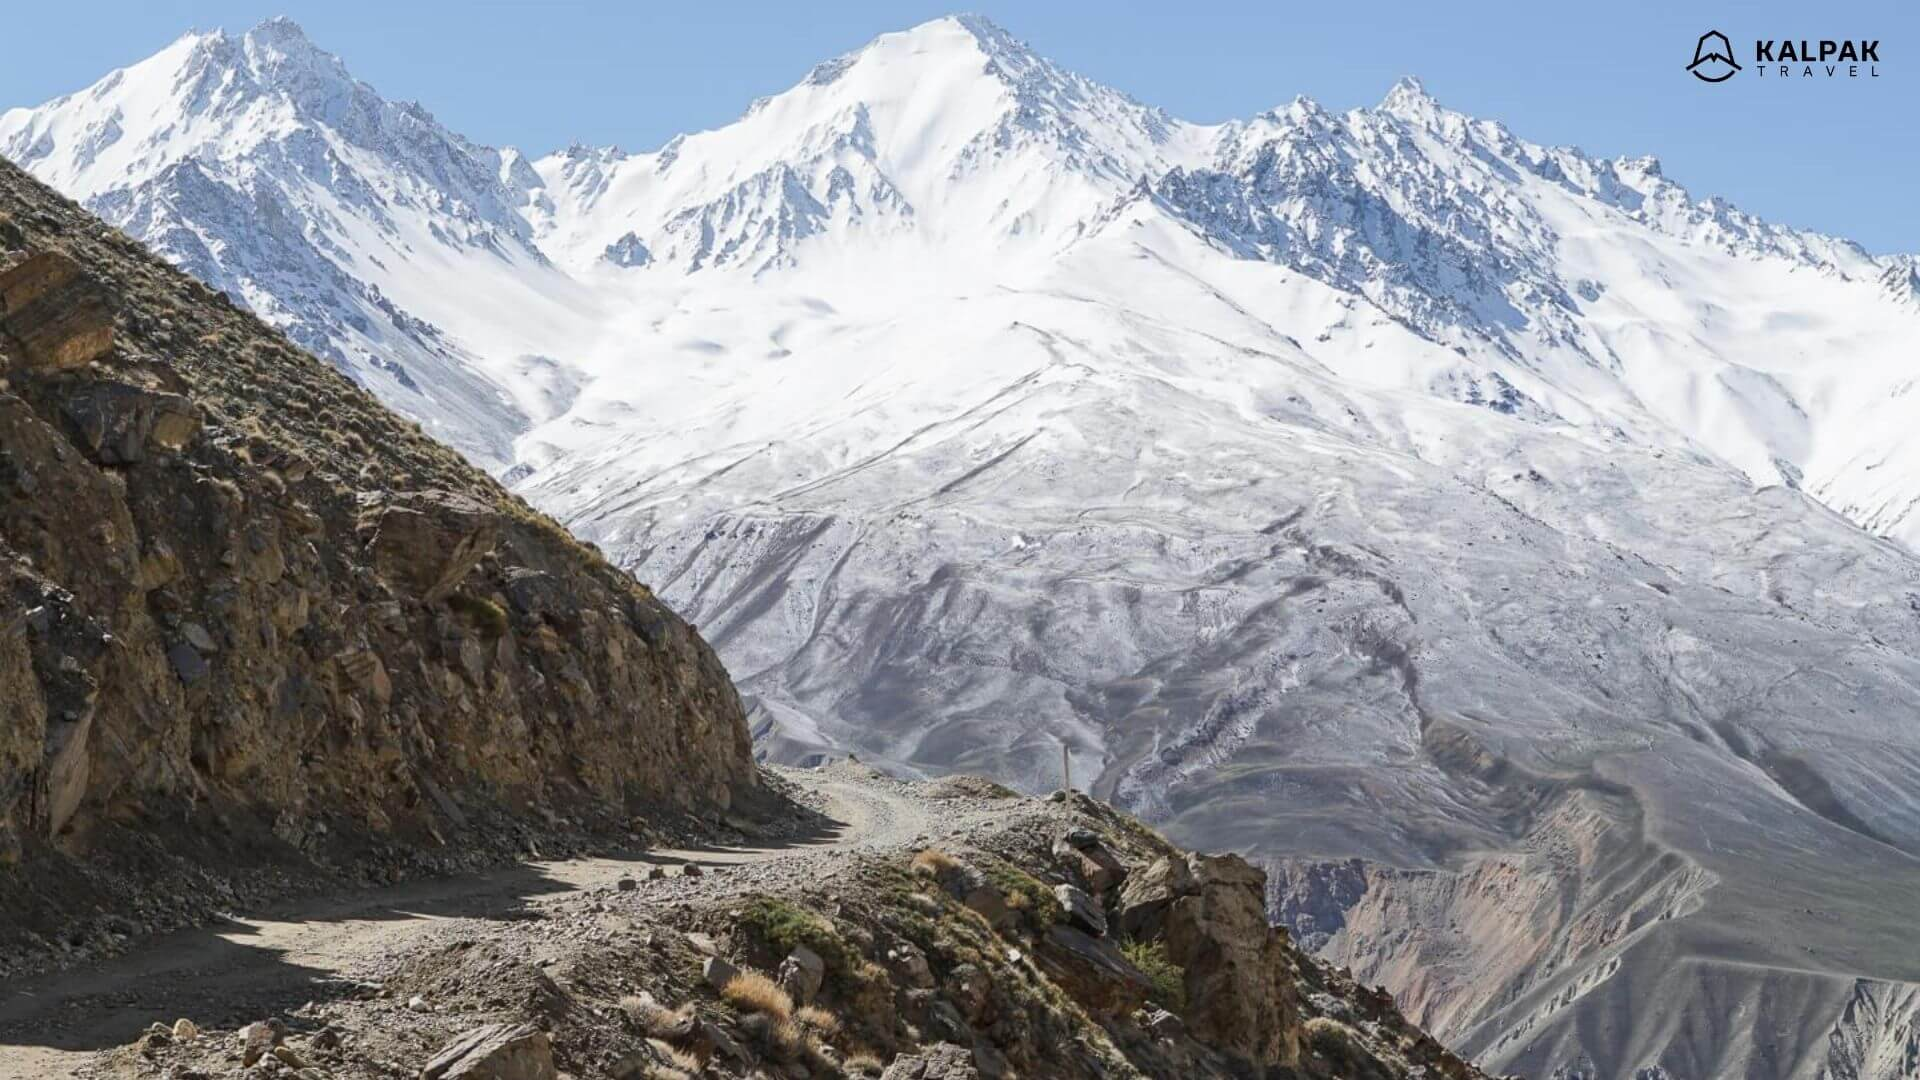 pamir Highway in Zentralasien